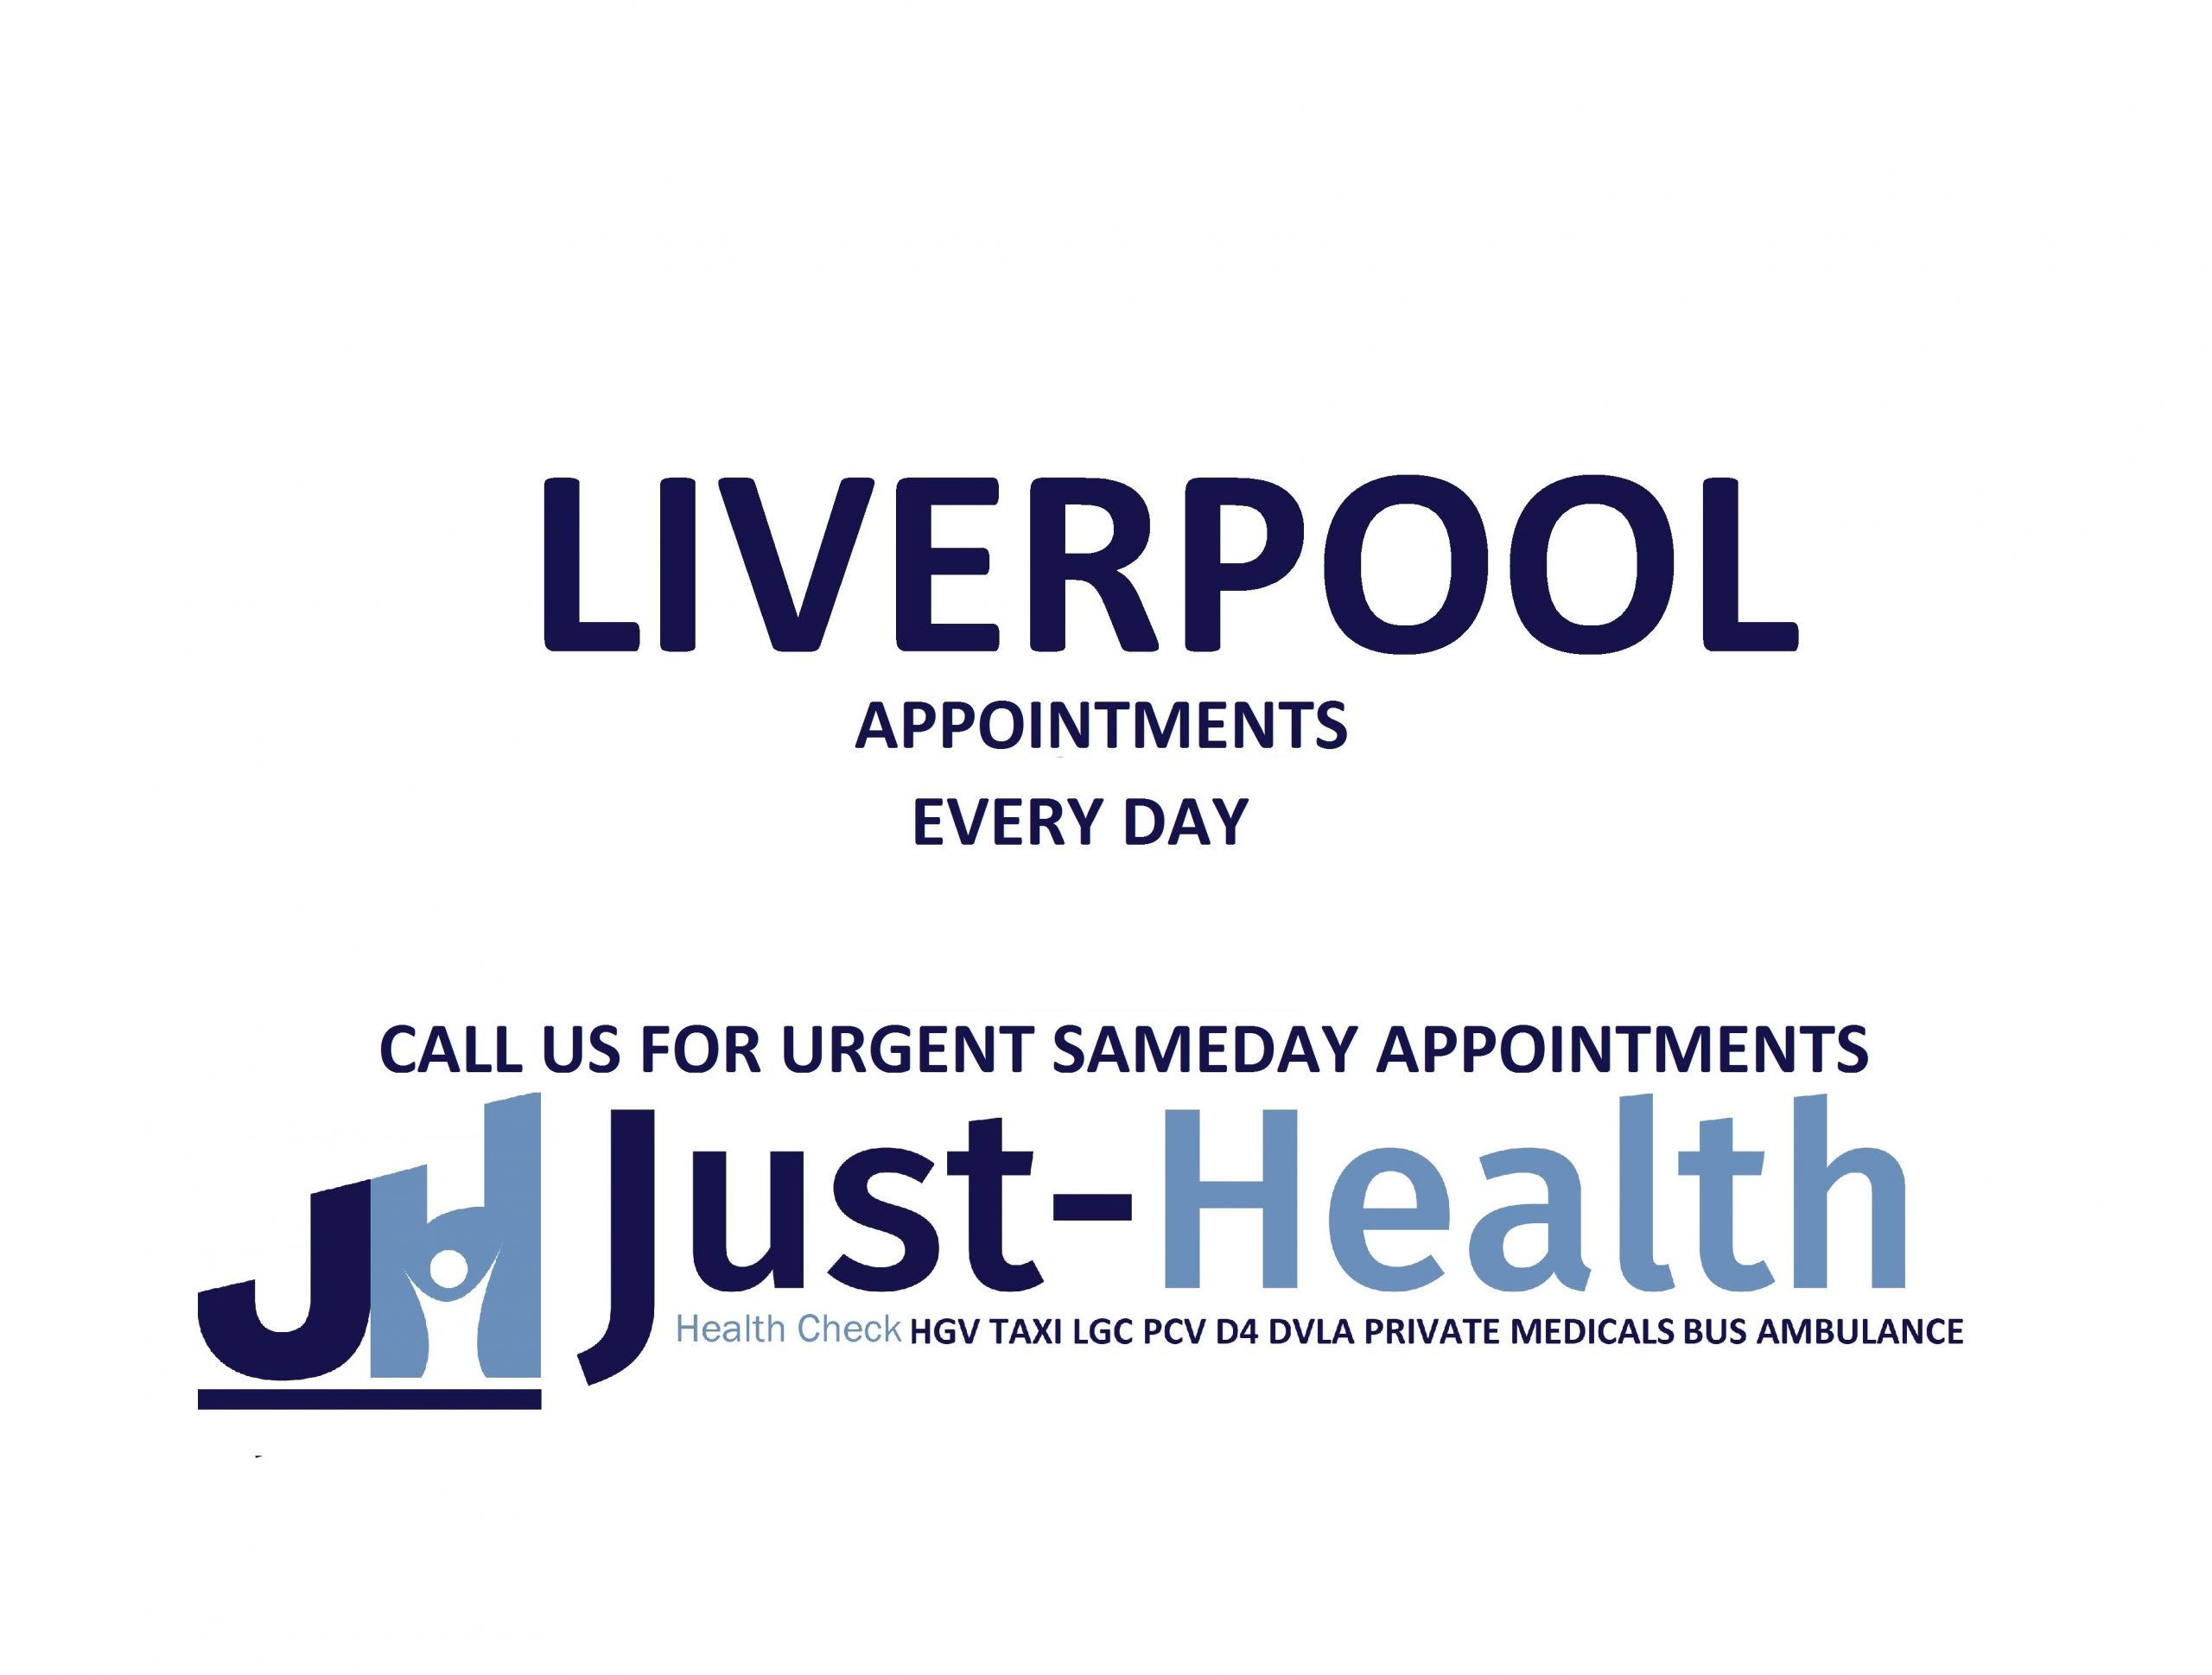 d4 PSV LGV Taxi Pcv HGV medical just health clinic Liverpool merseyside docks birkenhead wallasey wirral